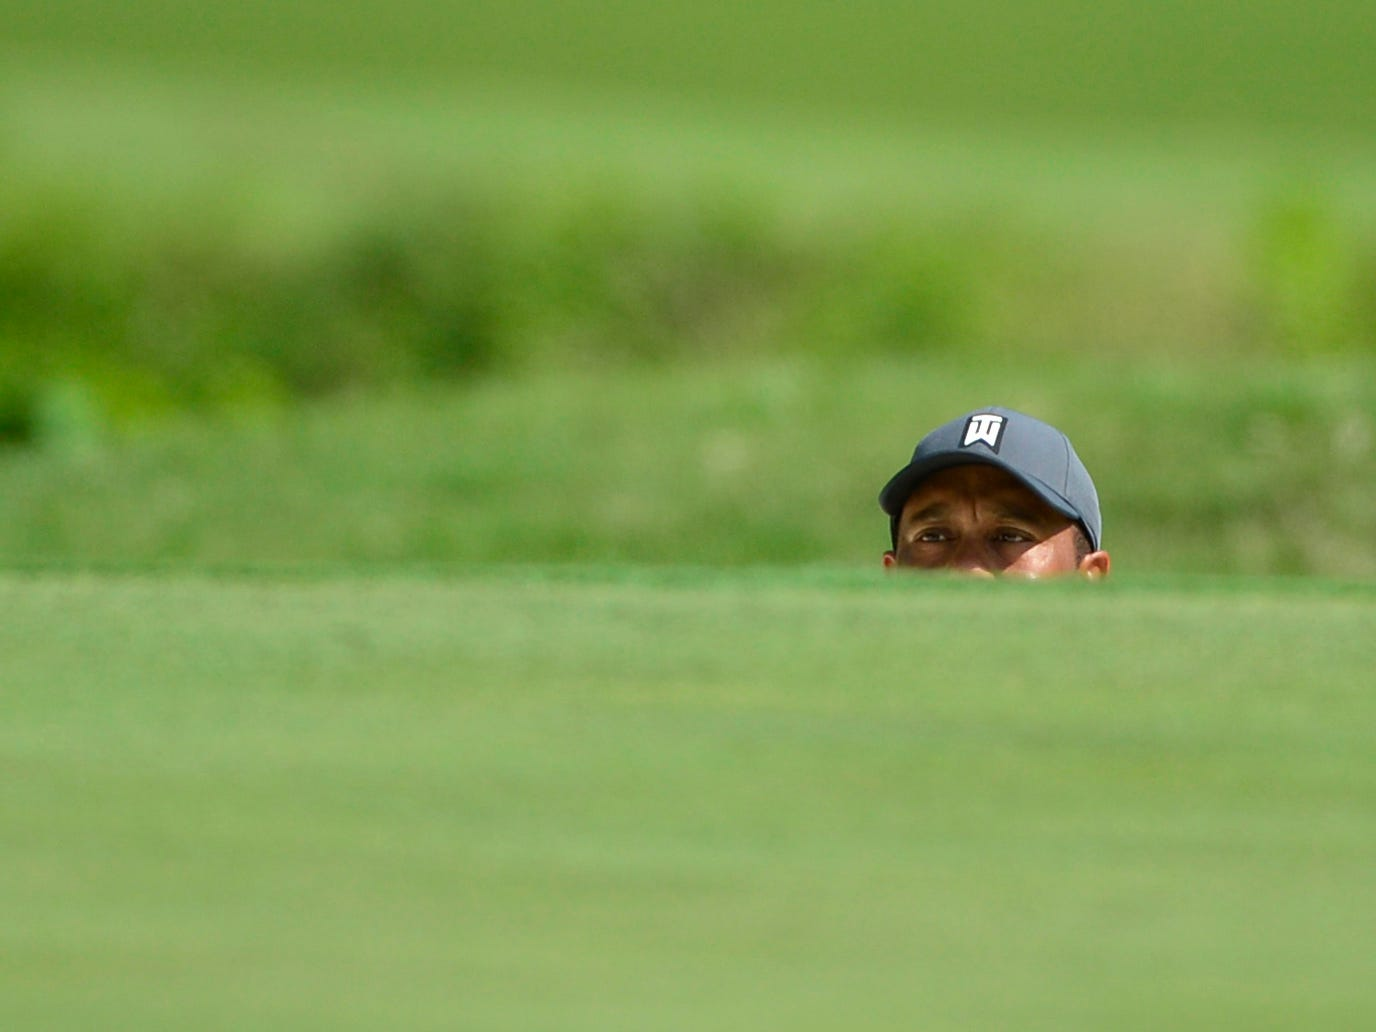 Tiger Woods looks out from a bunker on the 17th hole during the first round of the PGA Championship.